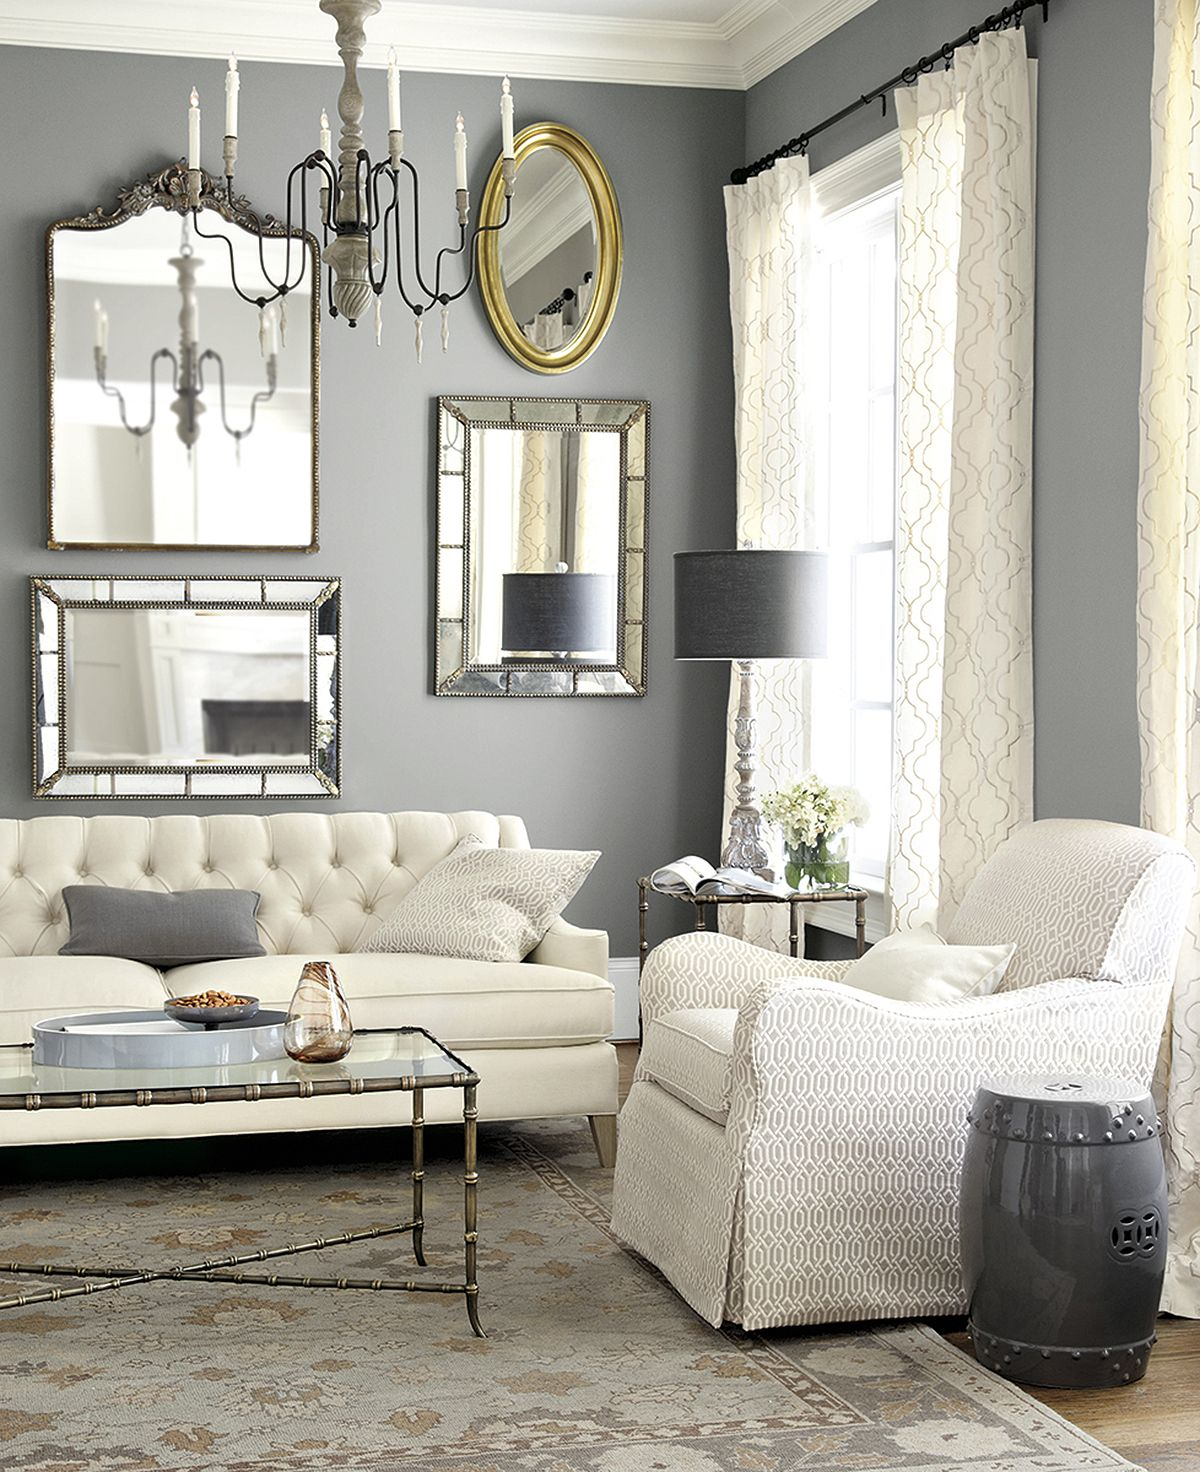 Living Room Glamorous Living Rooms 1000 images about furniture on pinterest sofas living rooms and neutral rooms